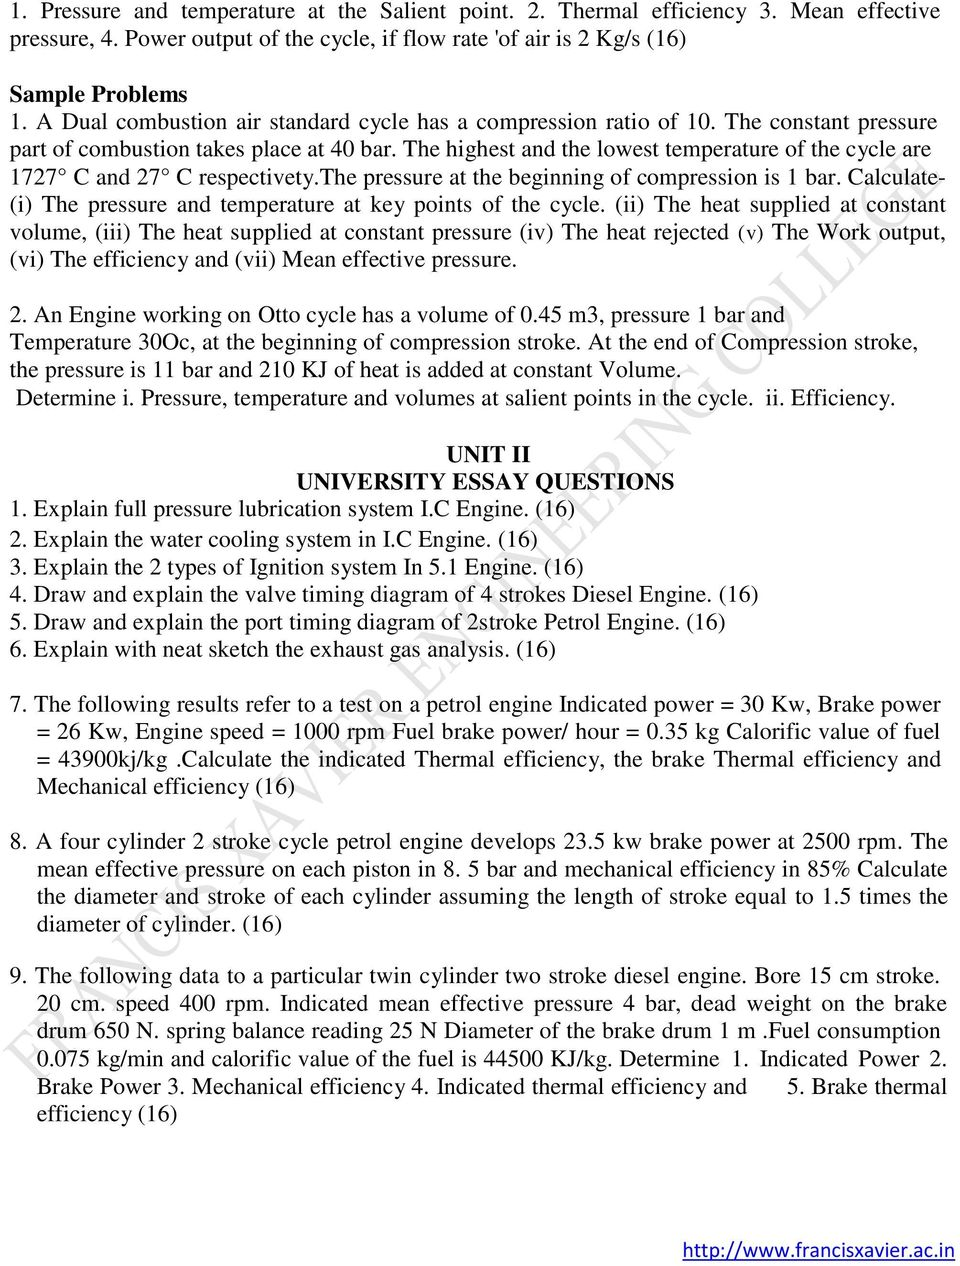 University Essay Questions Pdf Petrol Engine Timing Valve Schematic Diagrams The Highest And Lowest Temperature Of Cycle Are 1727 C 27 Respectivety